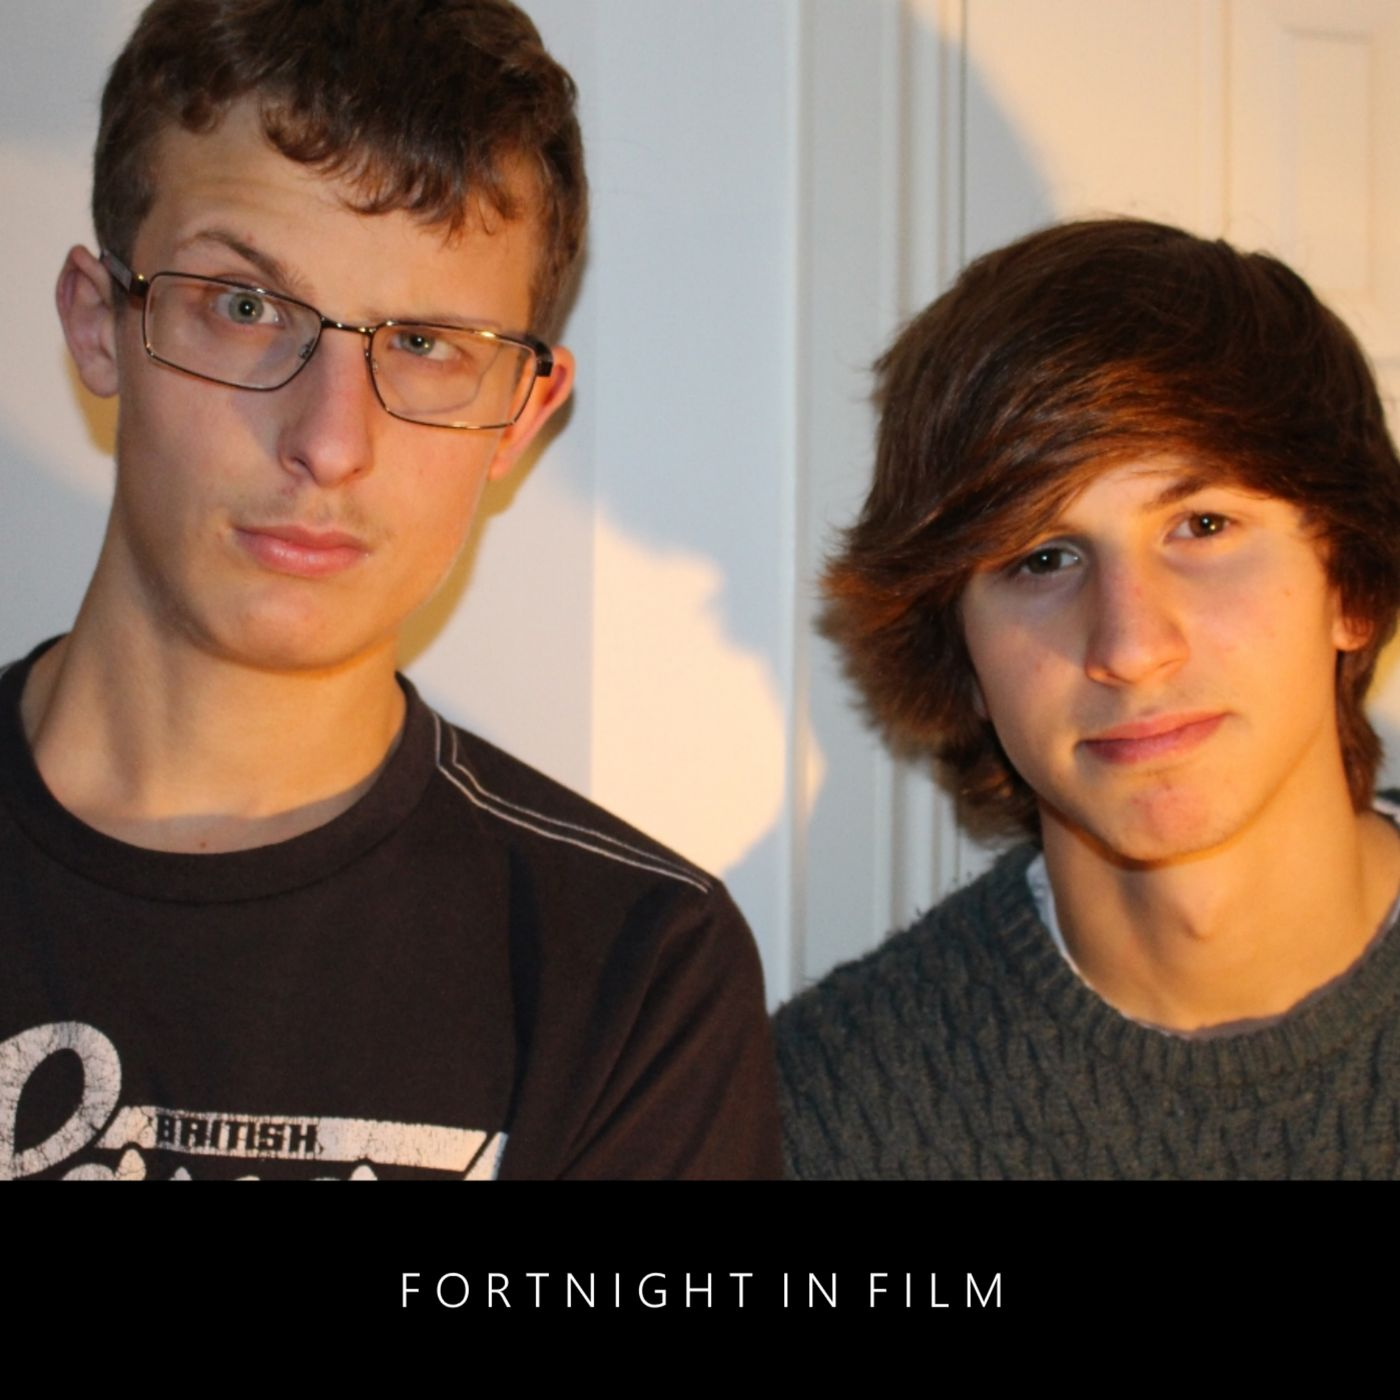 Fortnight In Film